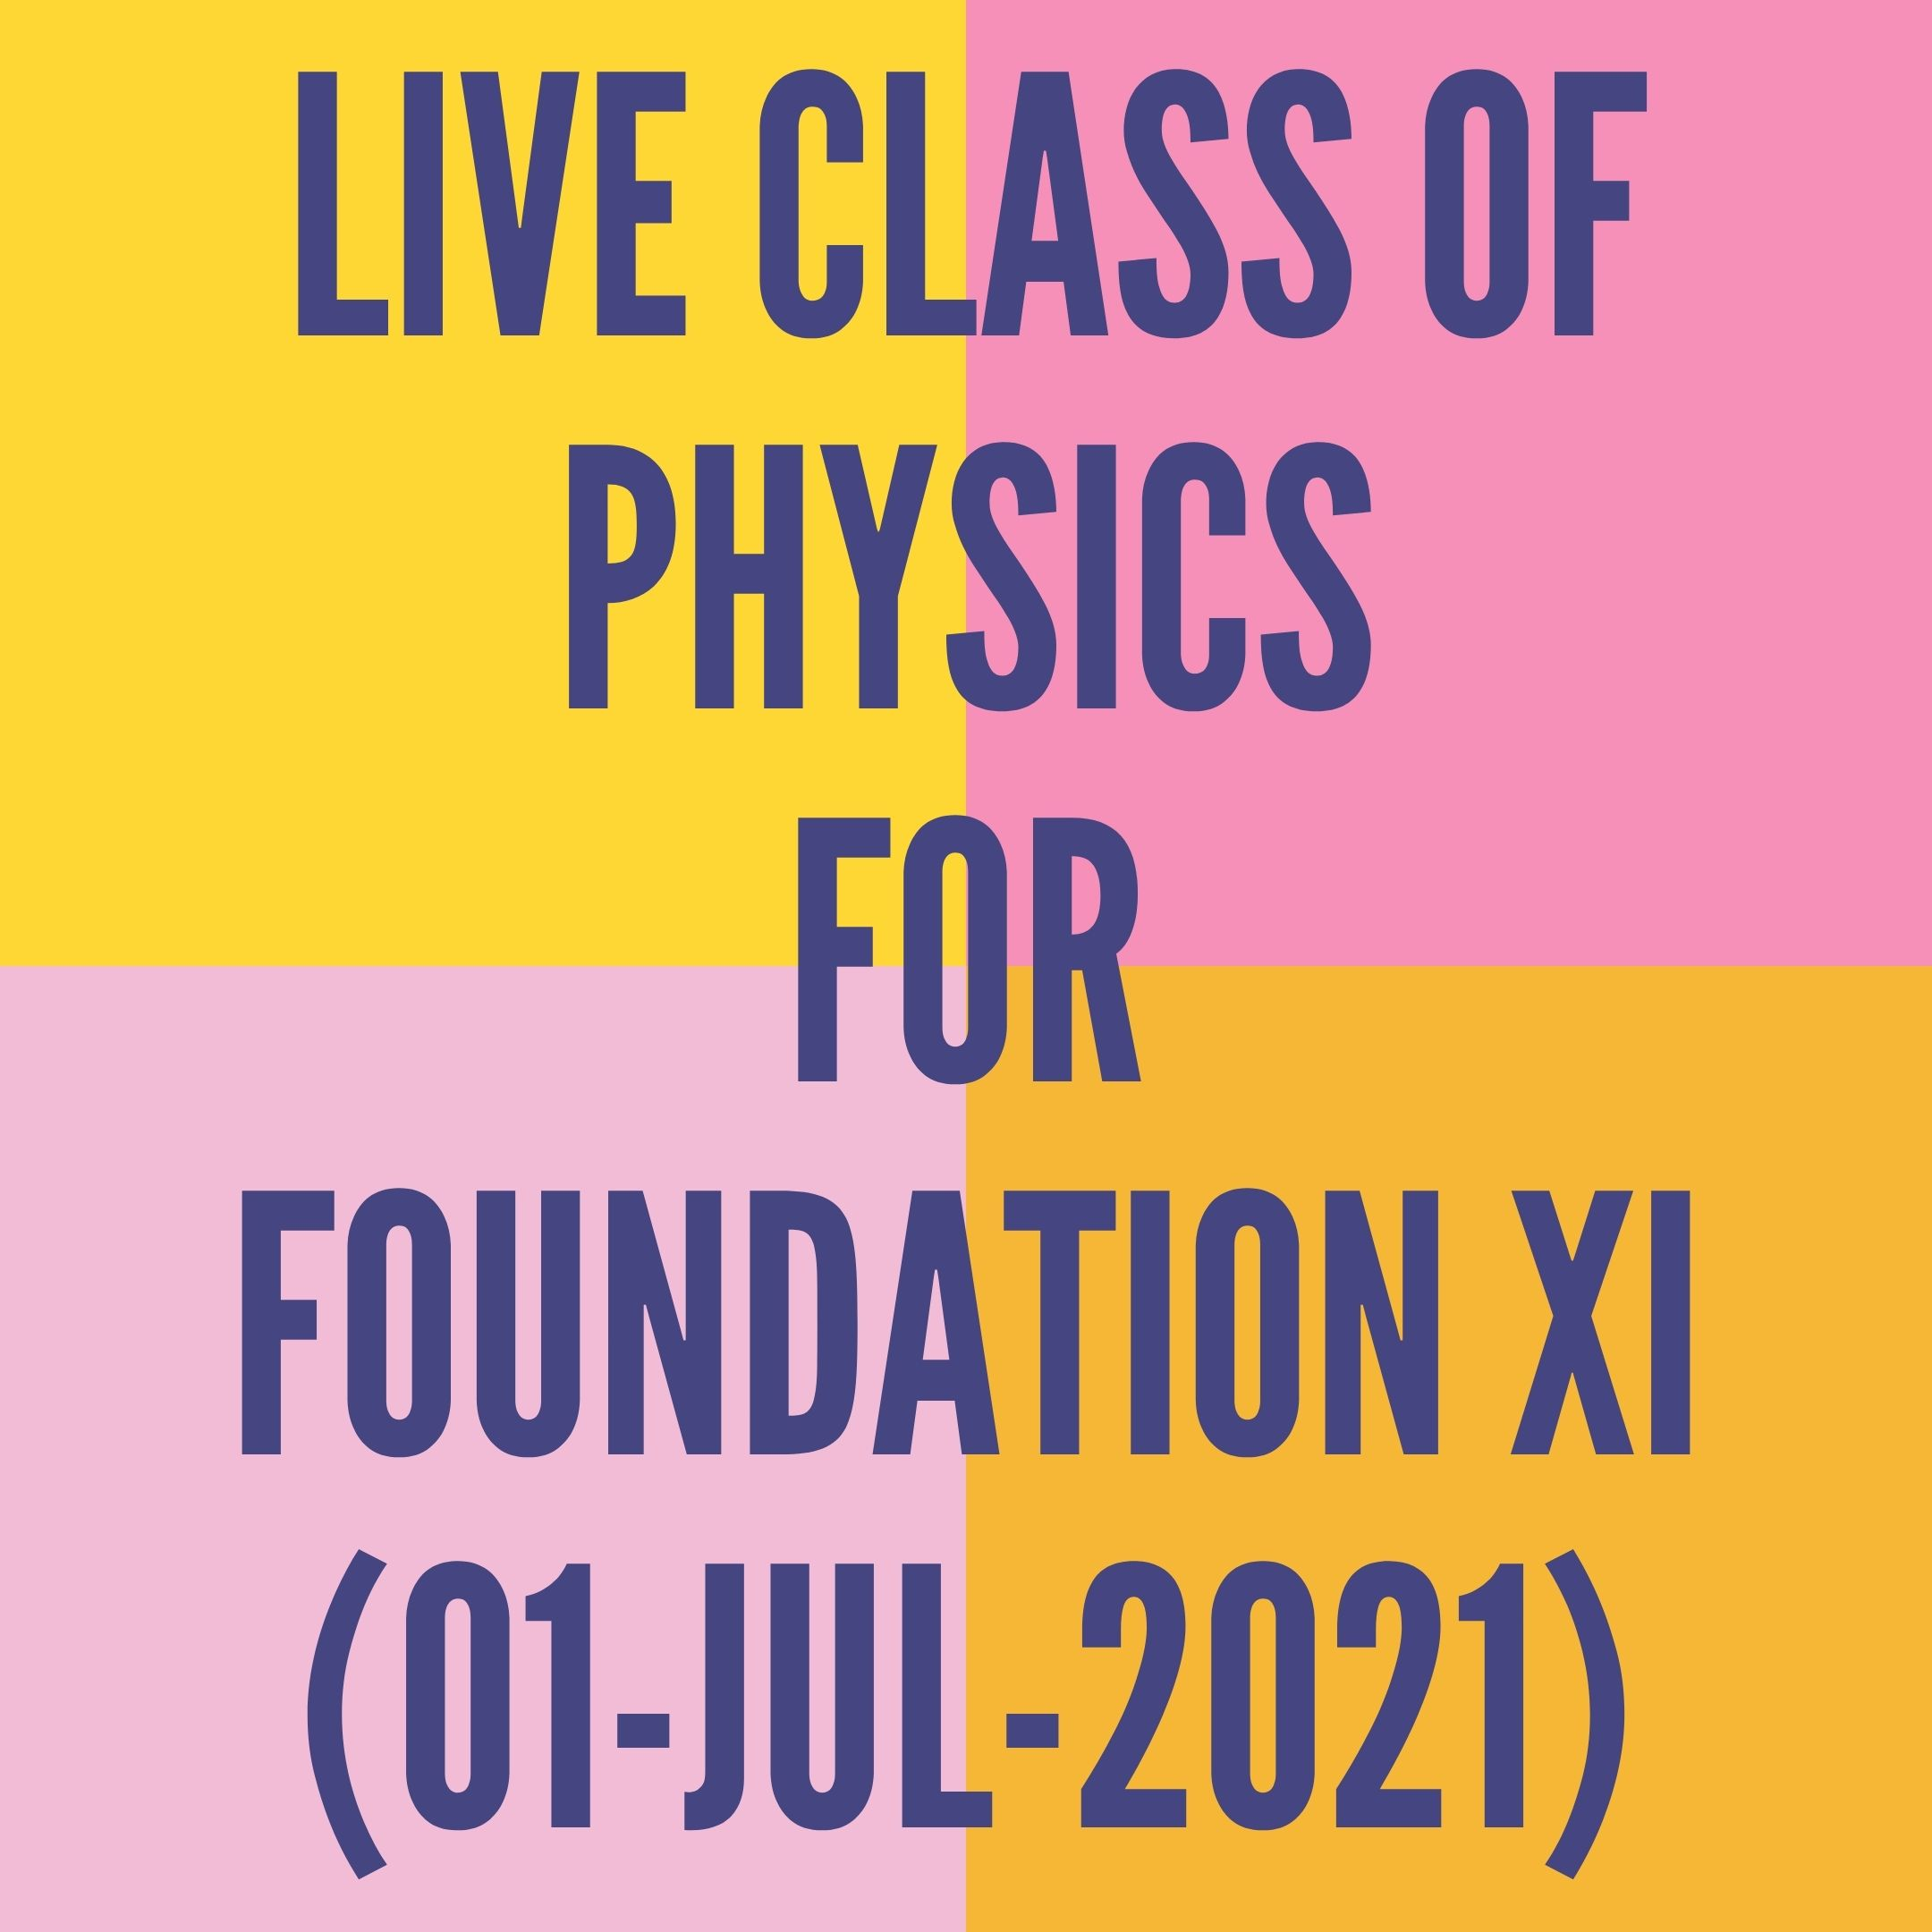 LIVE CLASS OF PHYSICS FOR FOUNDATION XI (01-JUL-2021) APPLIED MATHS